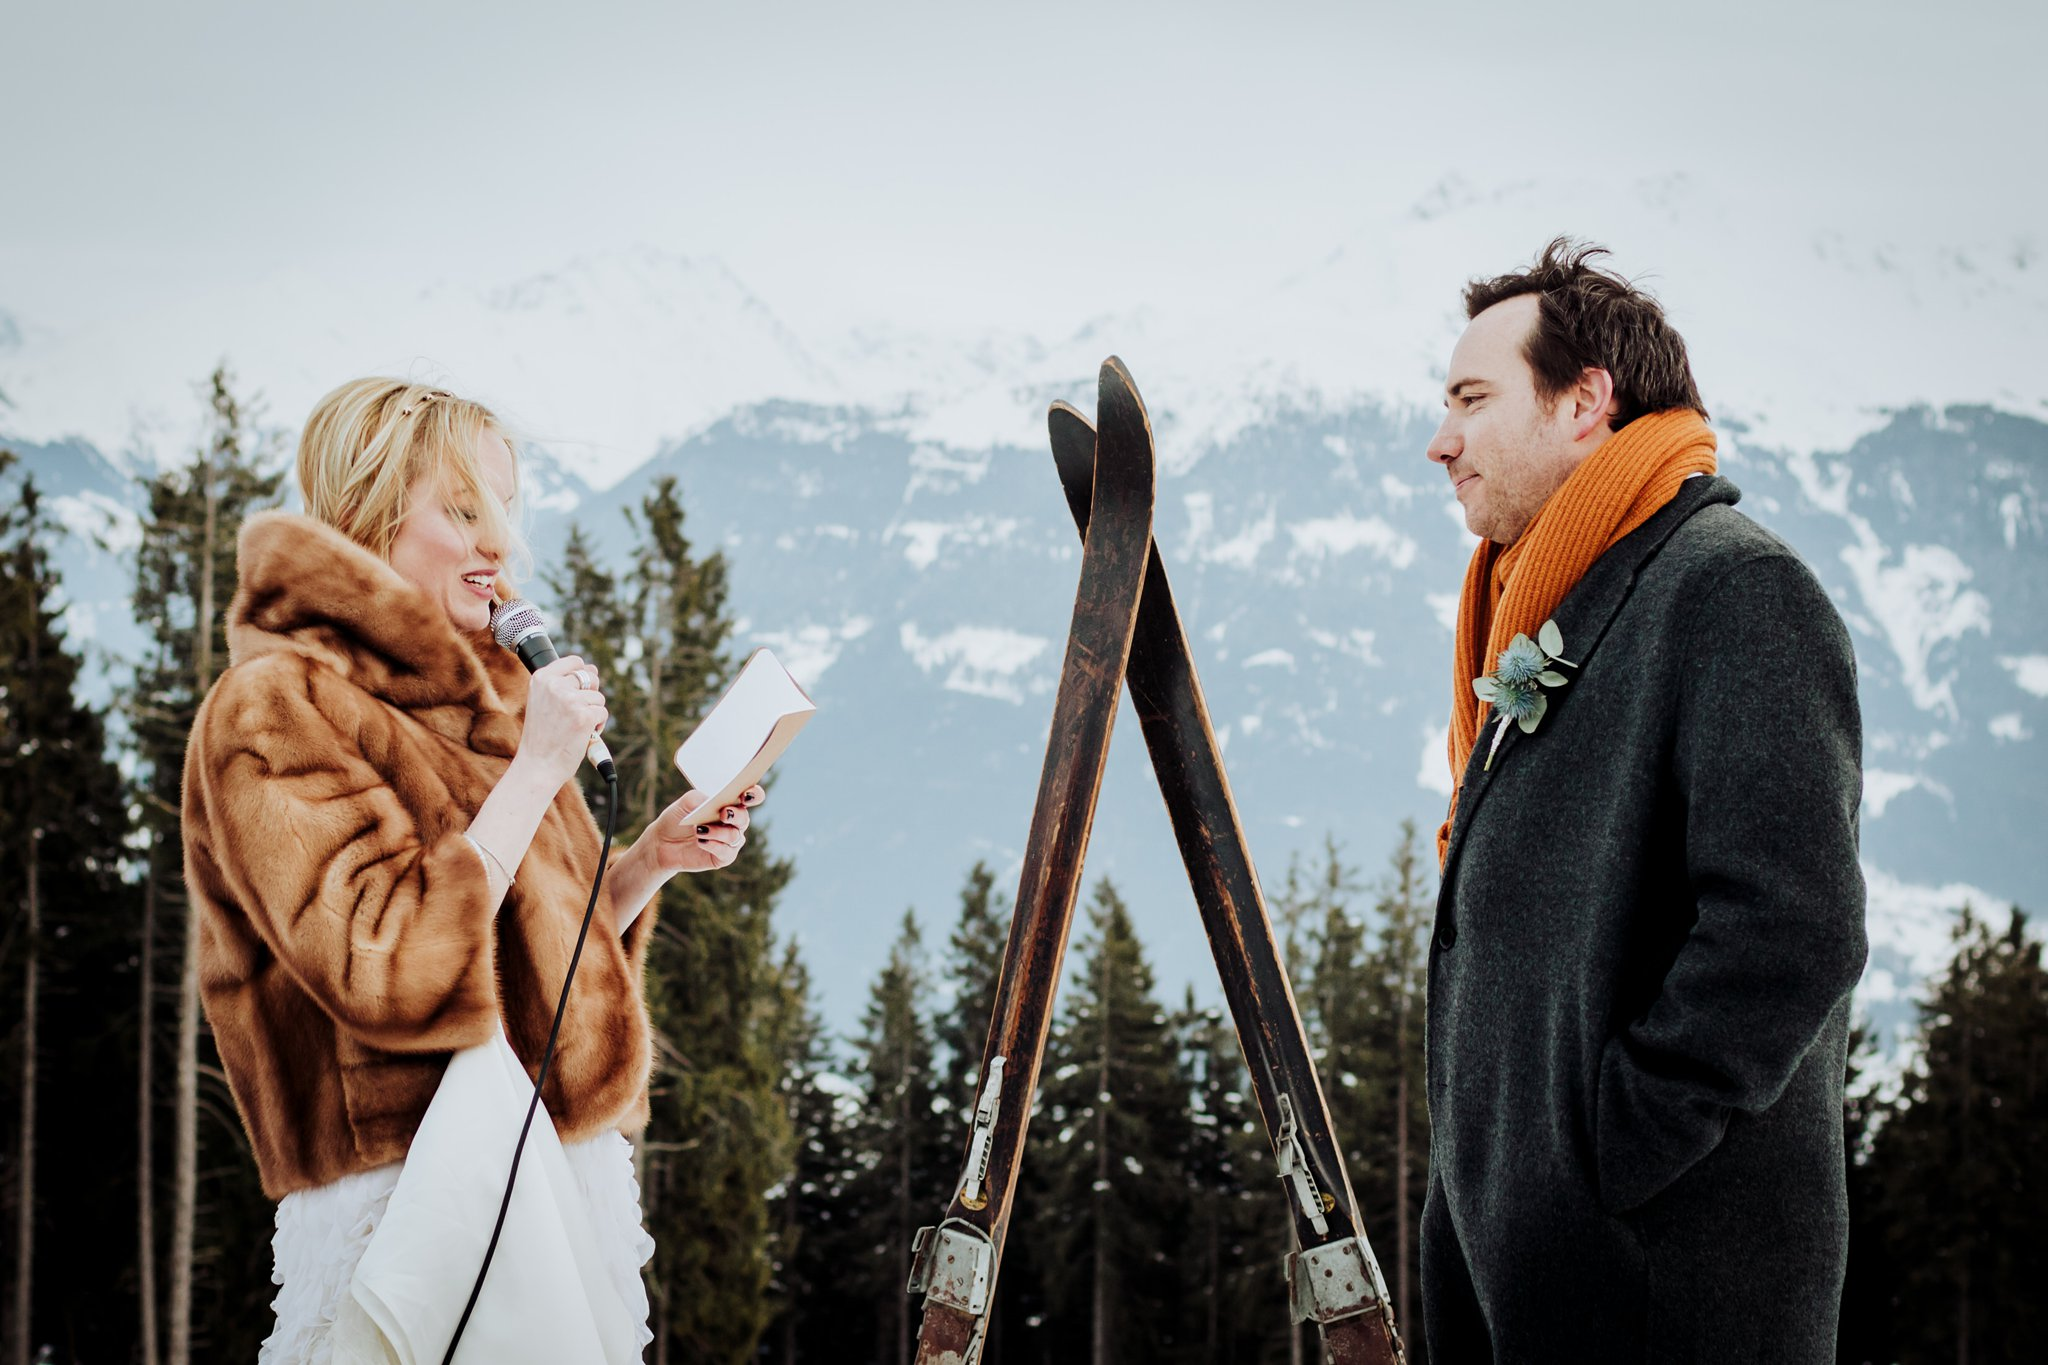 An outdoor winter wedding ceremony in an Austrian Ski resort by Wild Connections Photography